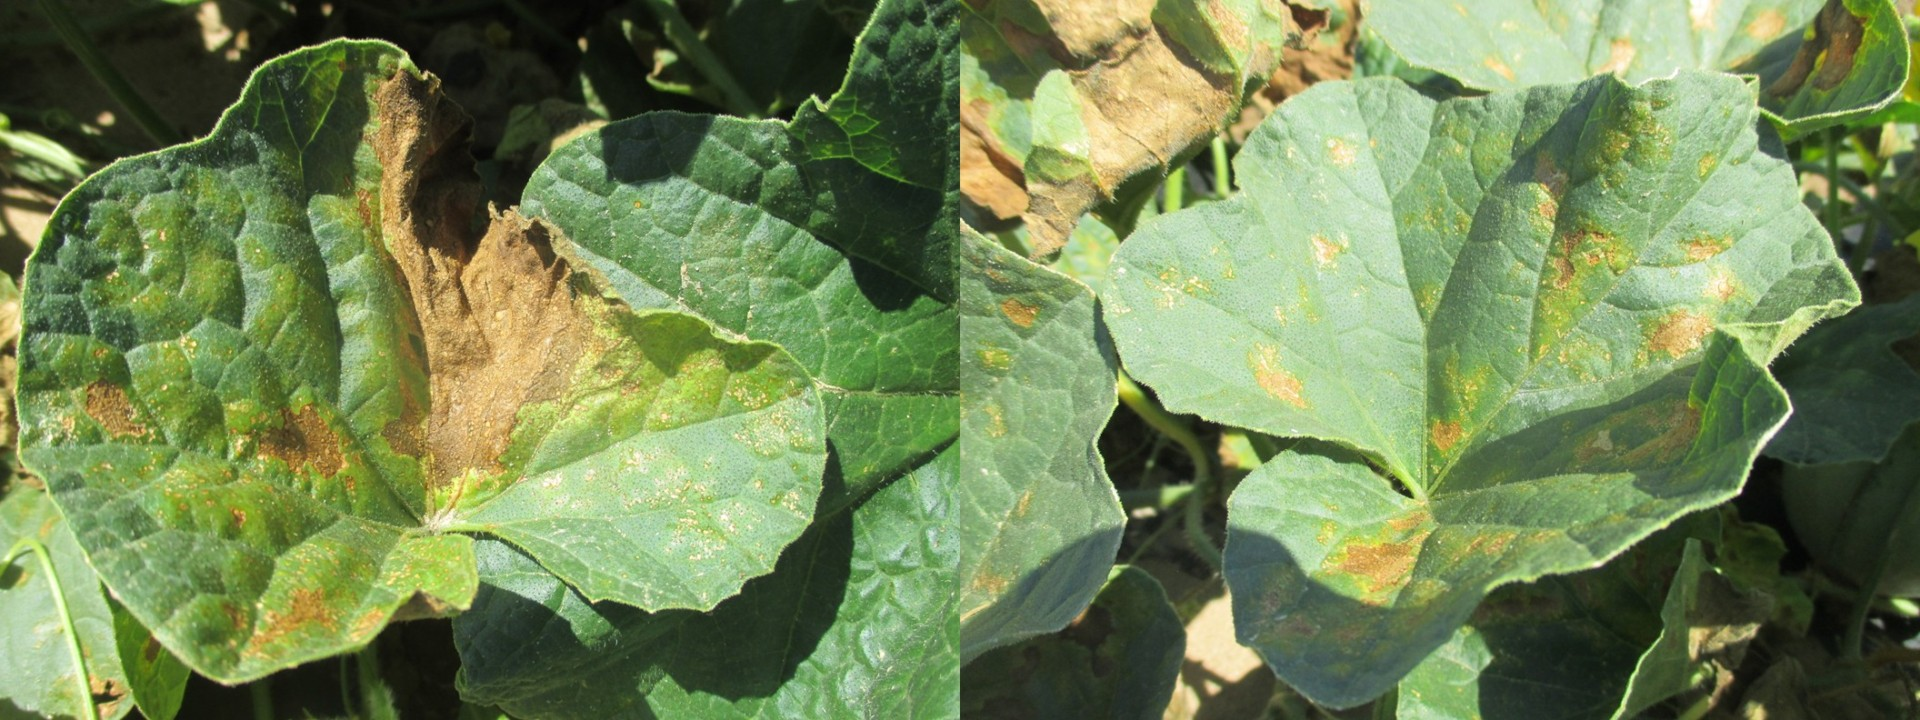 Figure 3. Necrosis lesions on the leaves affected by manganese toxicity.